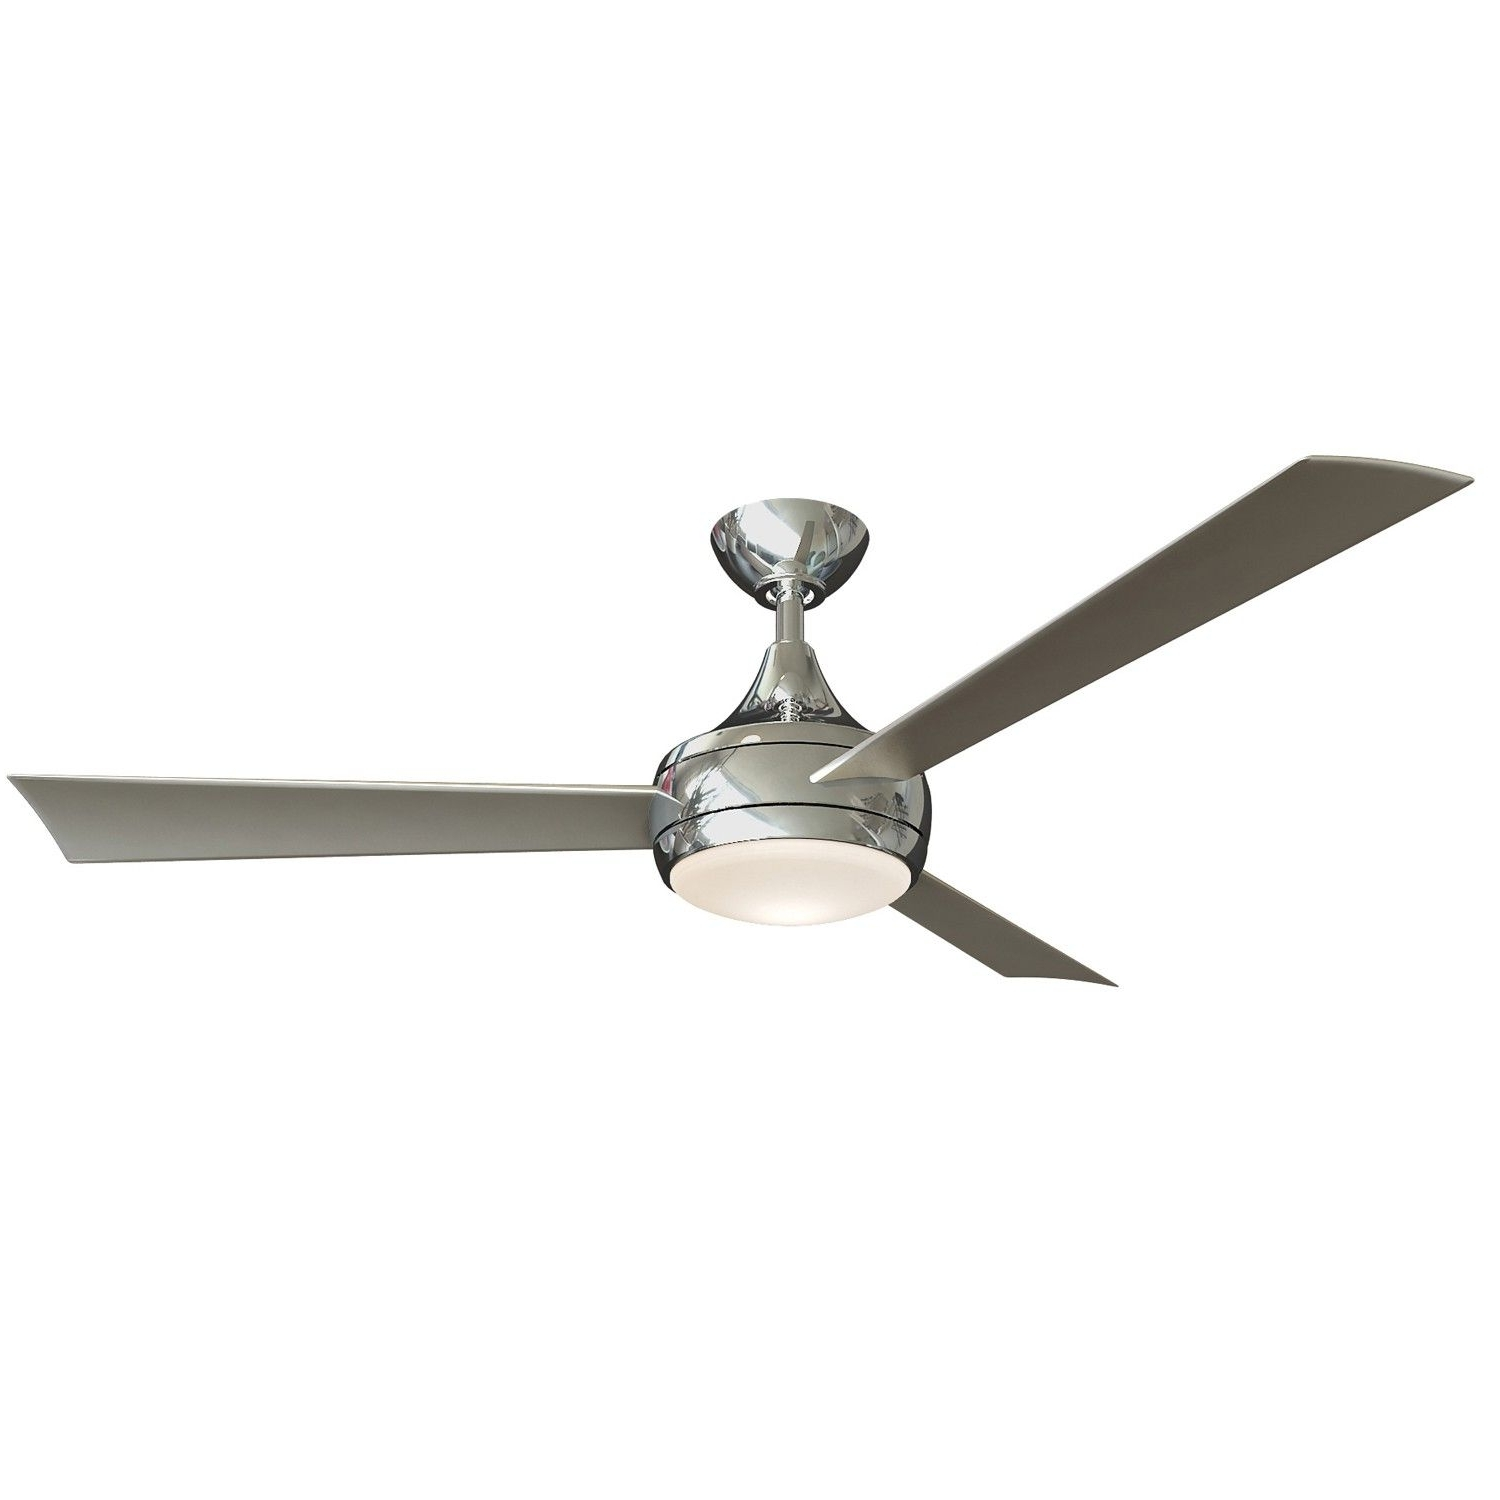 Popular Friday Favorites: Top 10 Led Ceiling Fans (View 15 of 20)